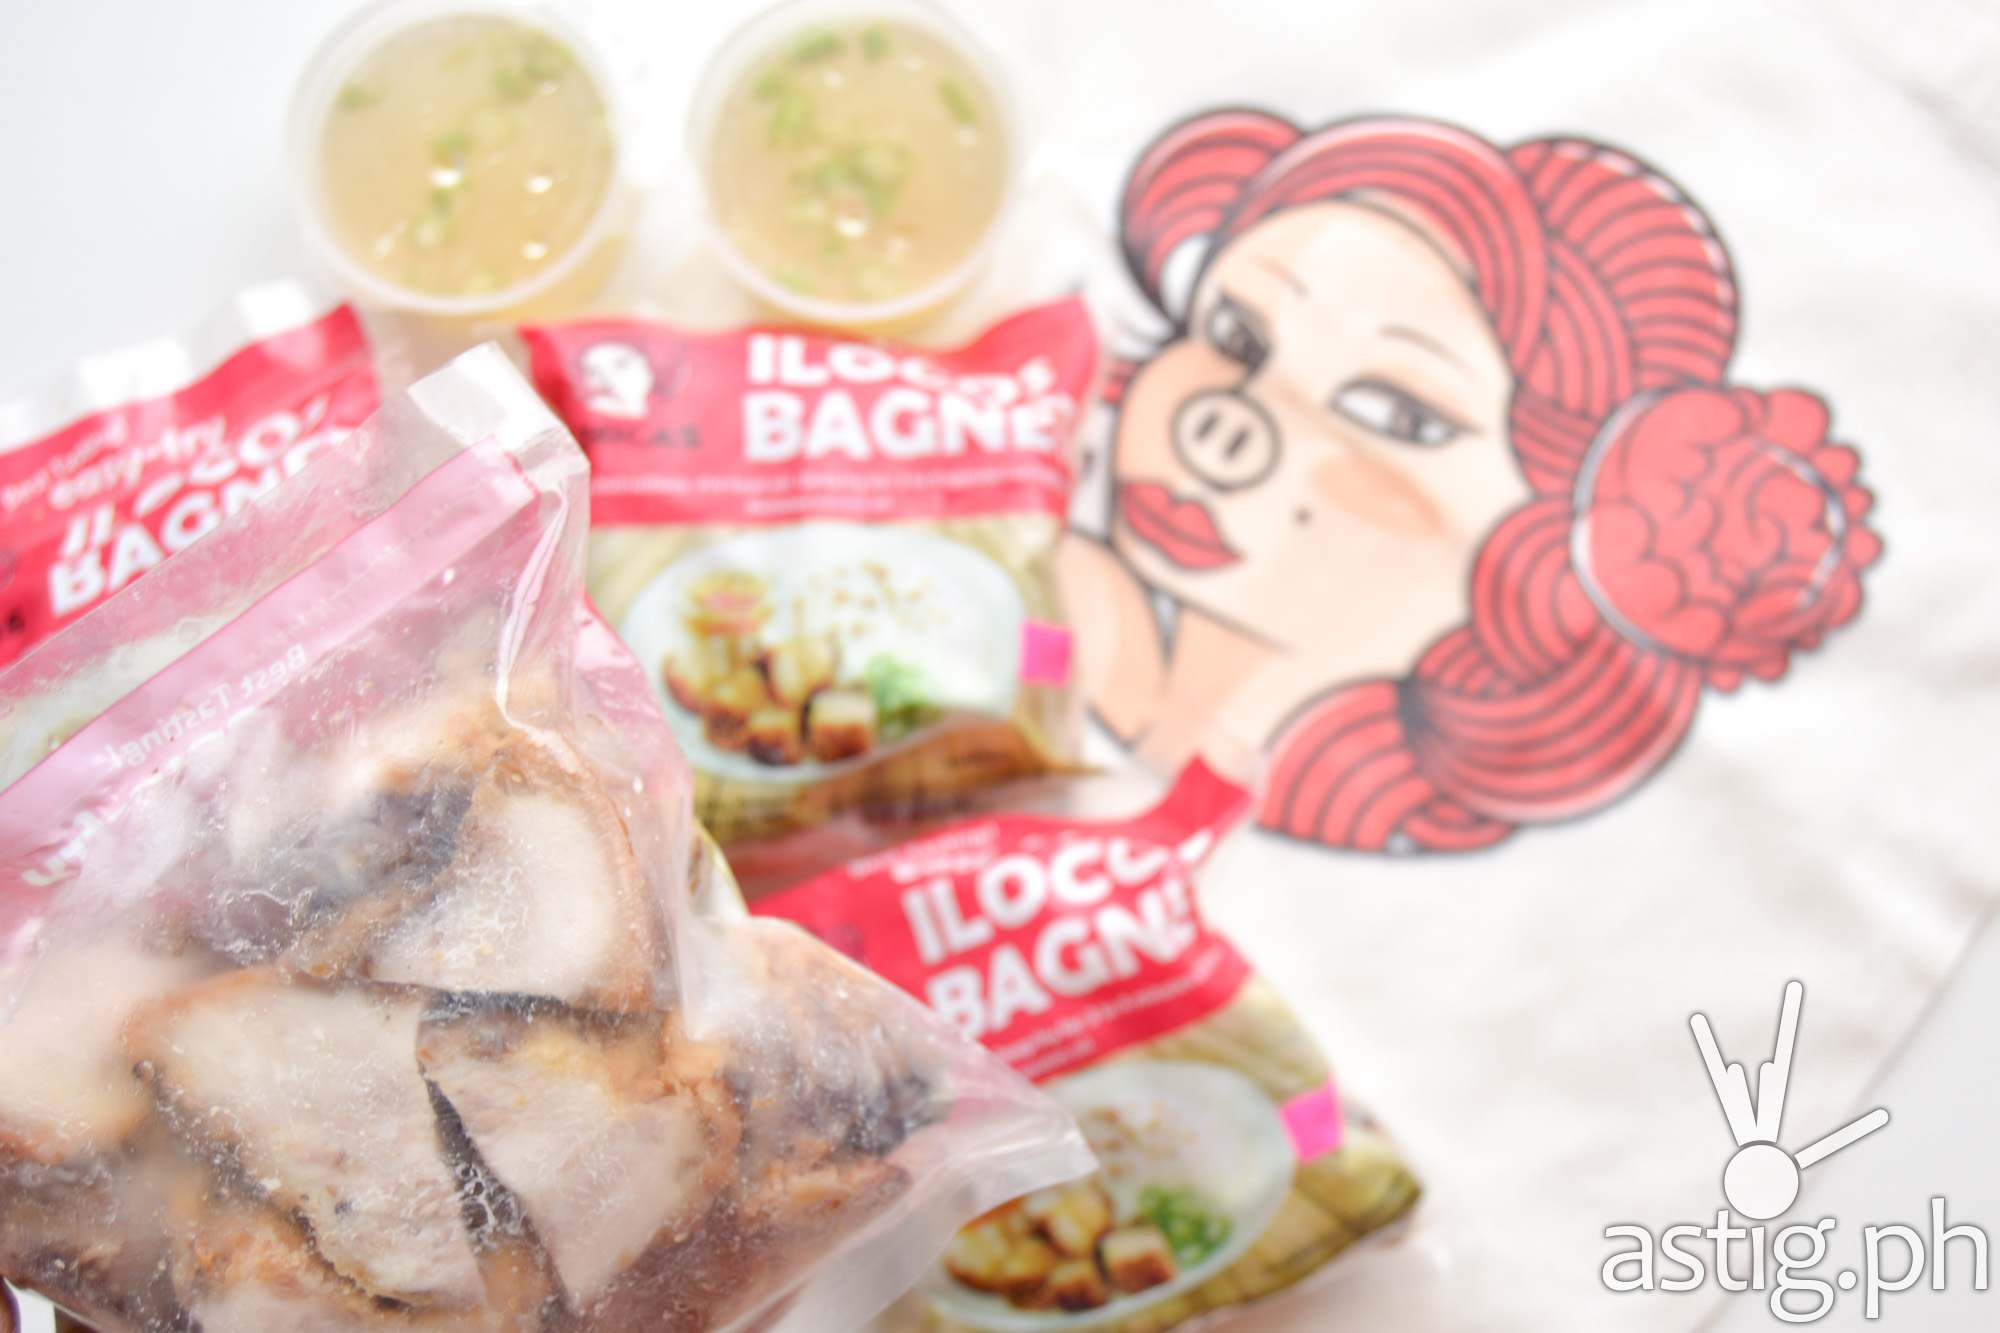 One pack of bagnet is good for 2-3 persons - Chica's Bagnet Express